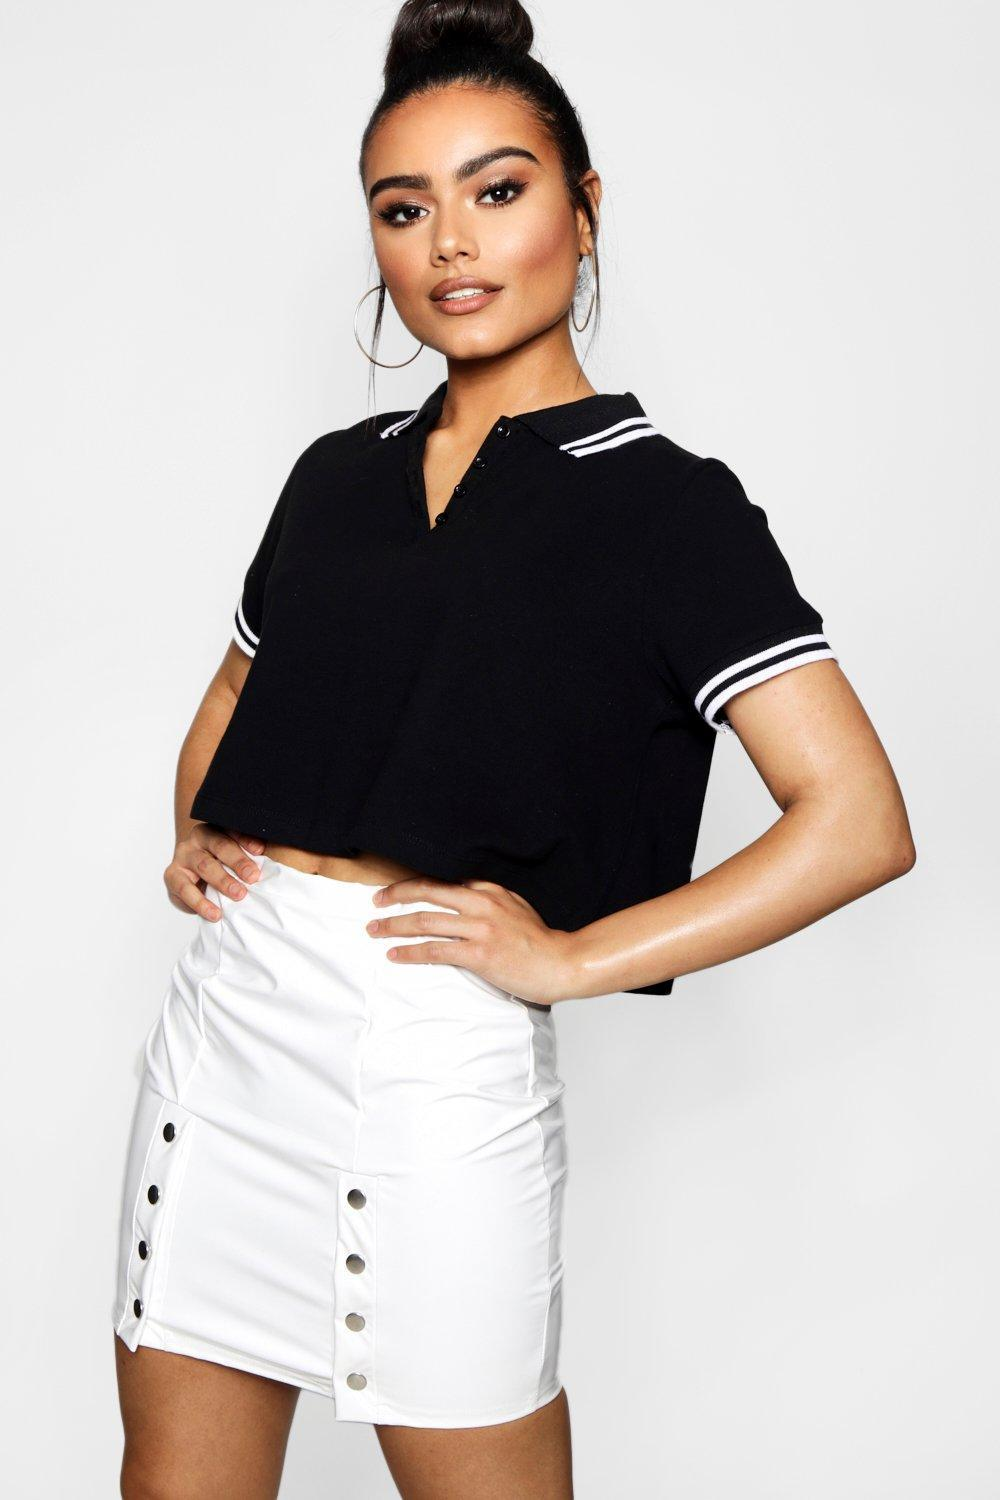 Boohoo Crop Swing Polo Tee Footlocker Online Buy Cheap With Credit Card MU0wx